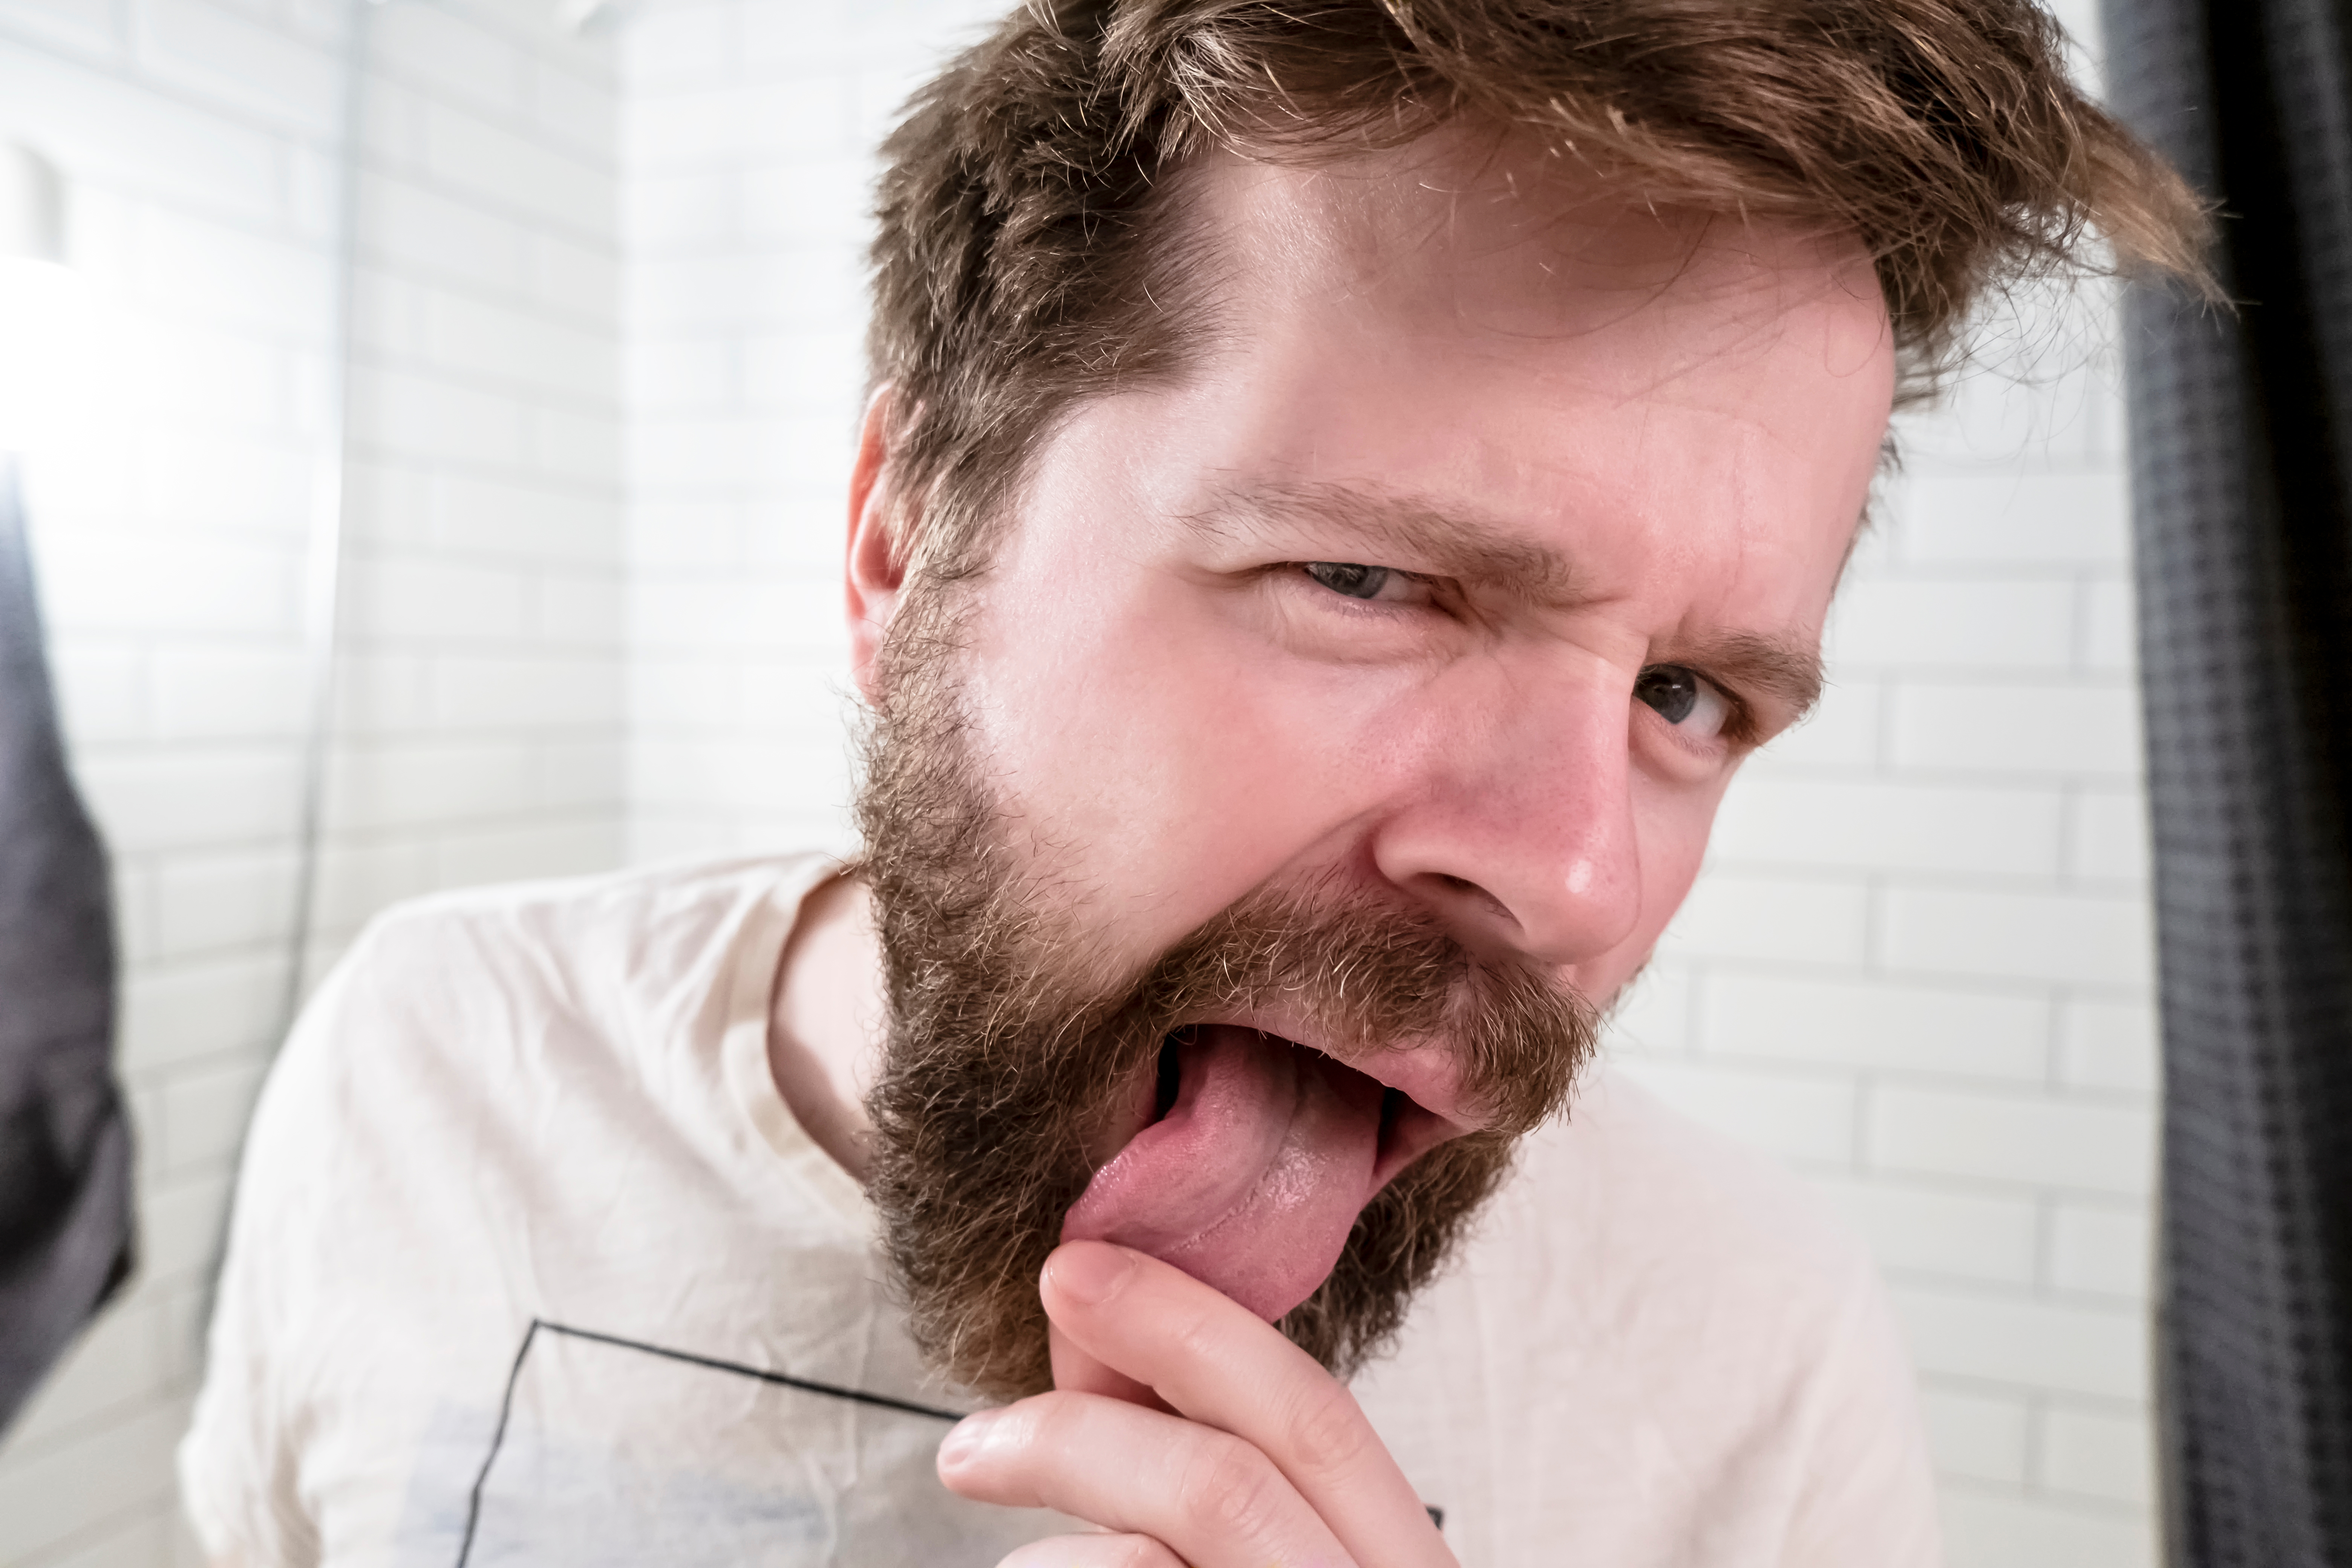 What Bulbar Tongue Twitching Really Looks Like